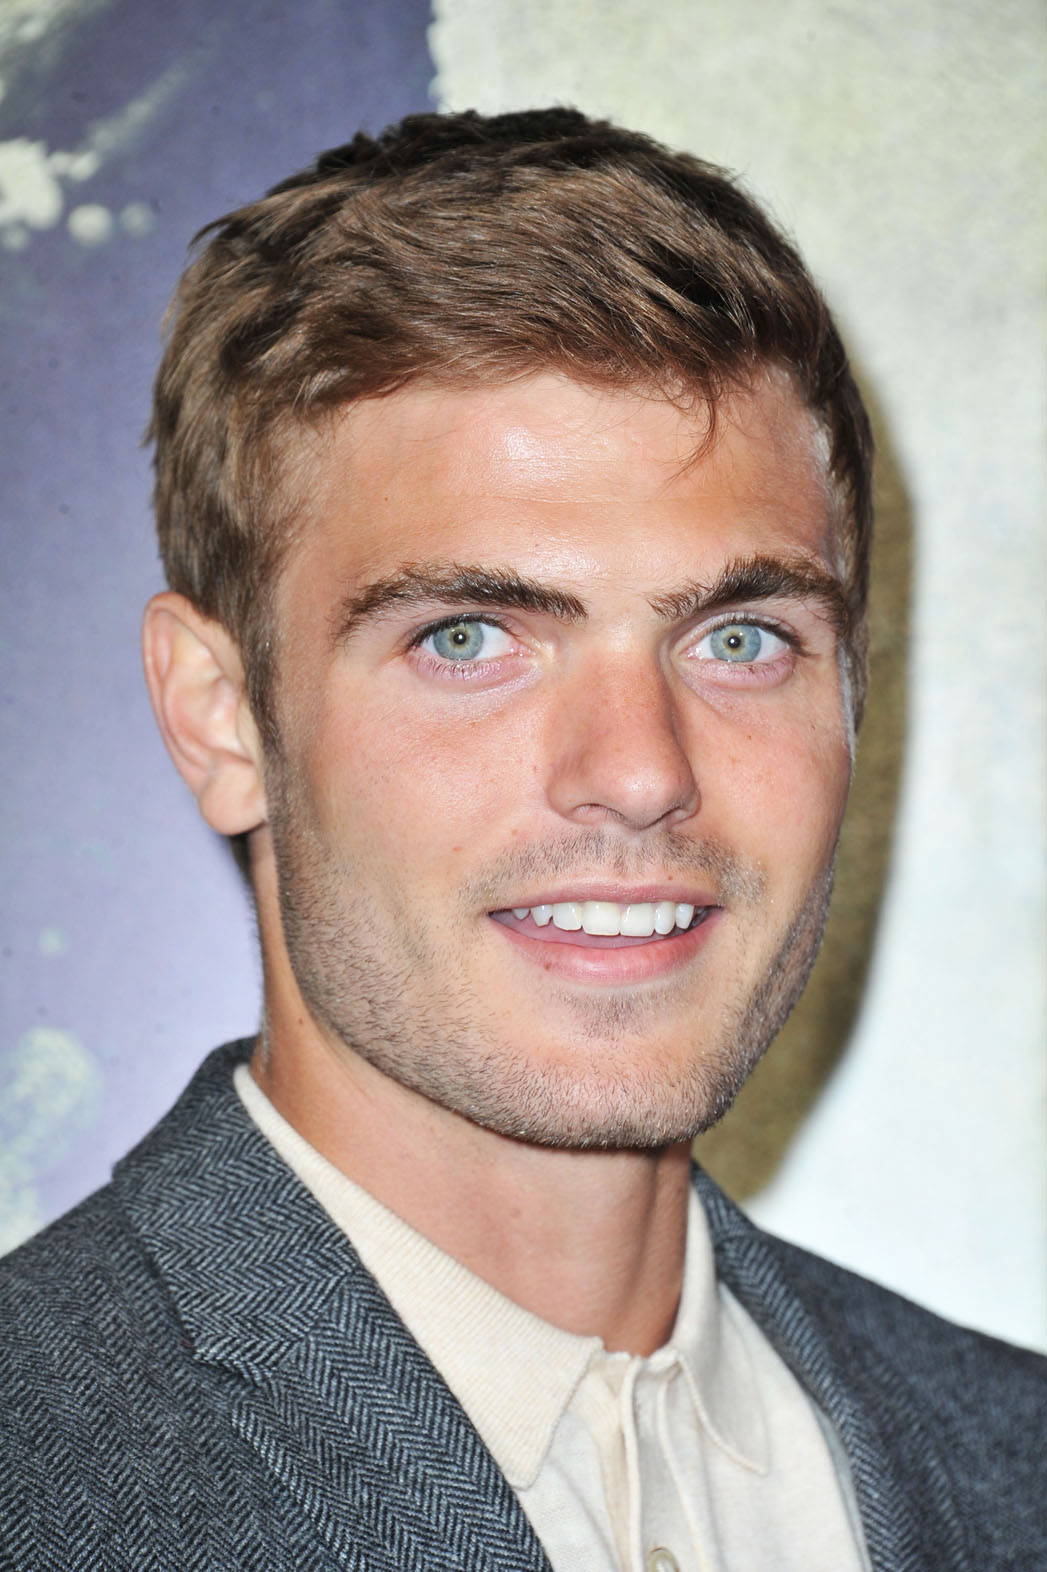 Alex Roe Headshot - P 2014